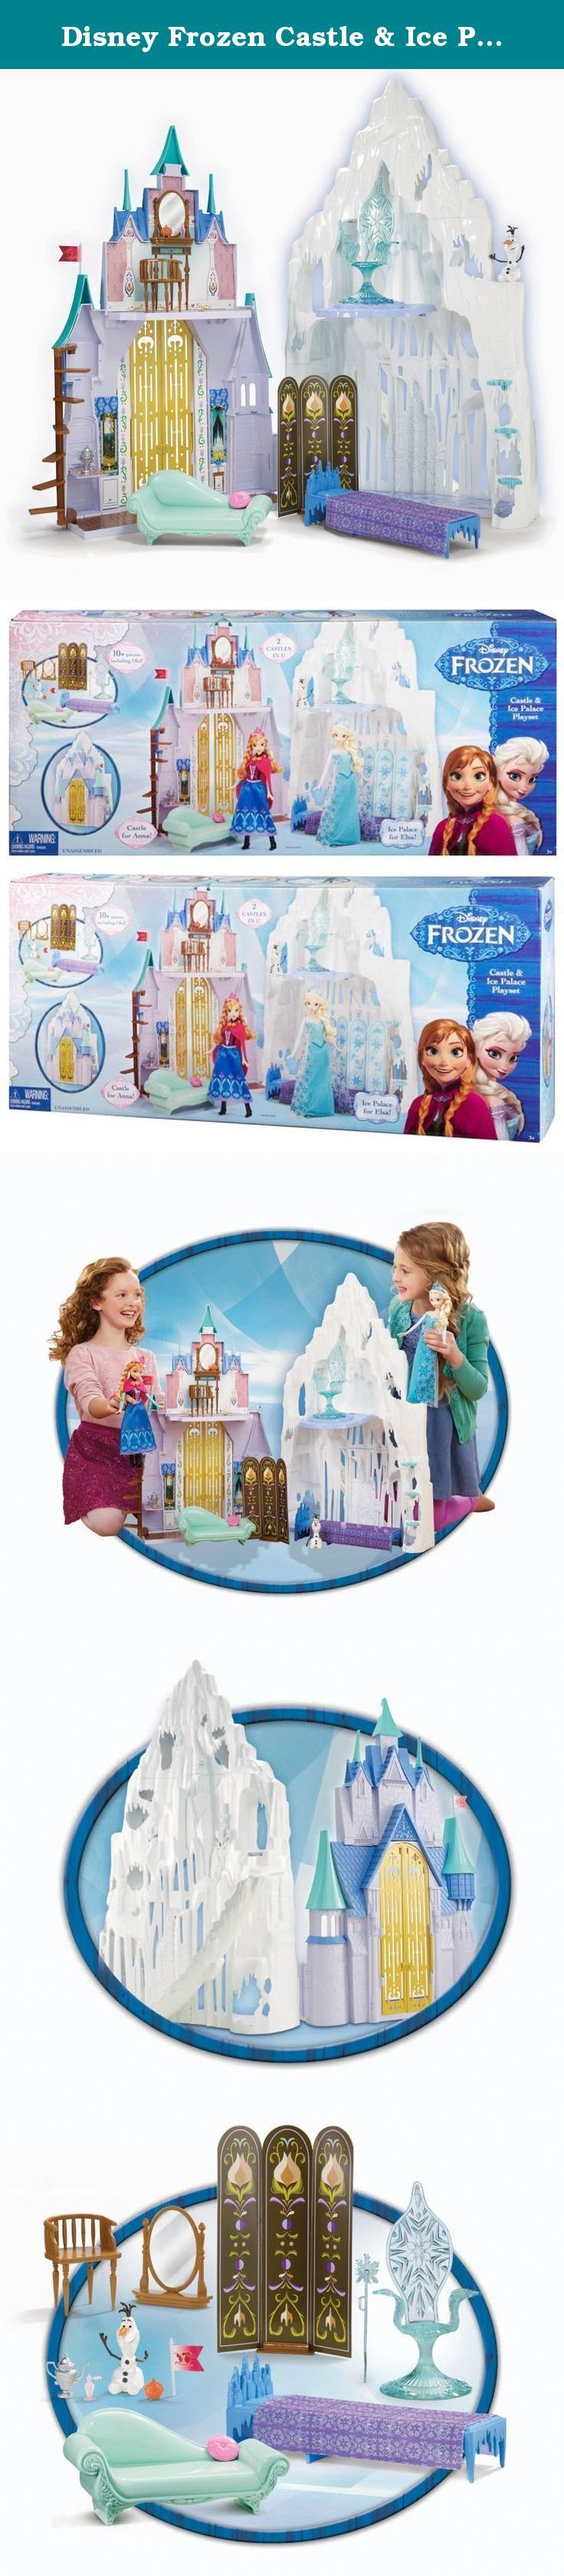 Disney Frozen Castle & Ice Palace Playset. Disney Frozen Castle & Ice Palace Playset: Inspired by the Disney film Frozen, this expandable play set allows girls to re-create the adventures of the film's two lead characters, sisters Anna and Elsa (dolls sold separately), opening to feature two beautiful settings: the impressive manse in Arendelle that Anna calls home and the majestic ice palace Elsa creates high up in the mountains. Anna's half of the playset is the perfect place for the...